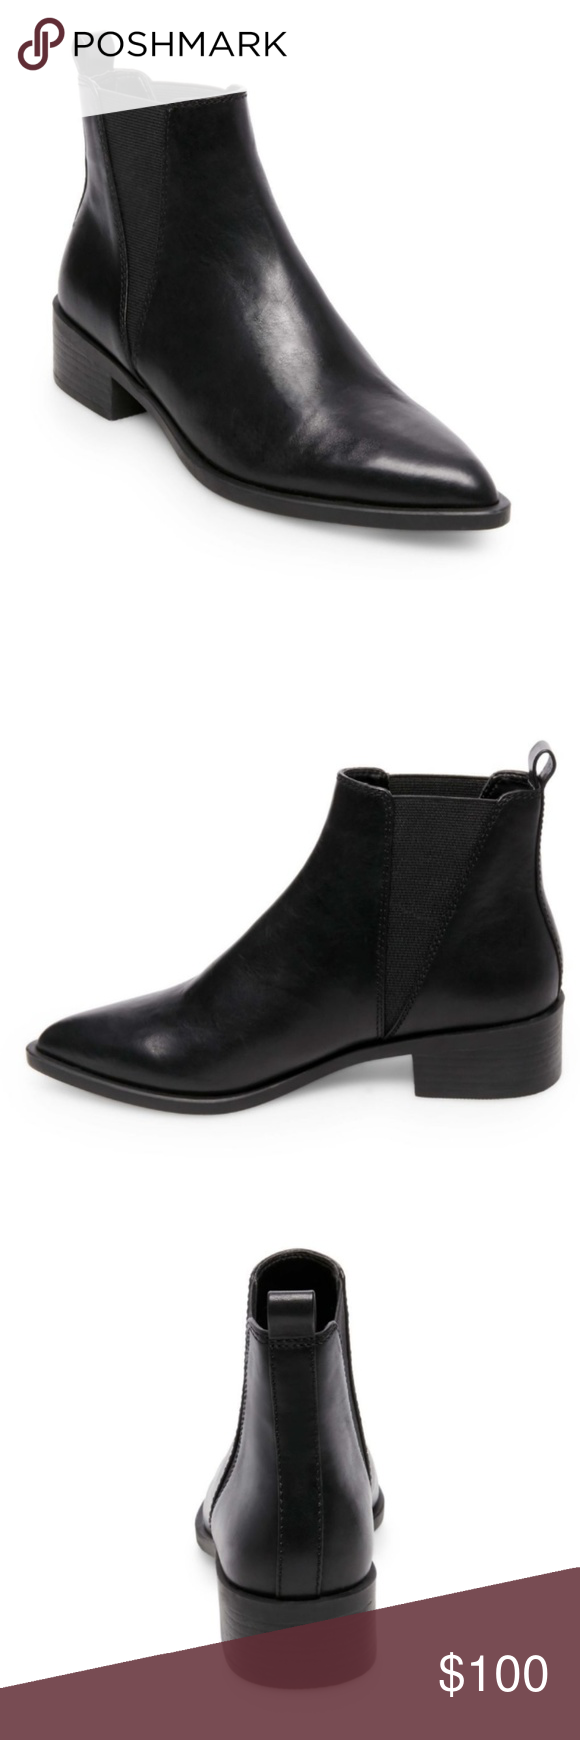 42f8e38ad66c NEW Steve Madden Jerry Black Leather Booties Ships quickly without box!  Brand new / tried